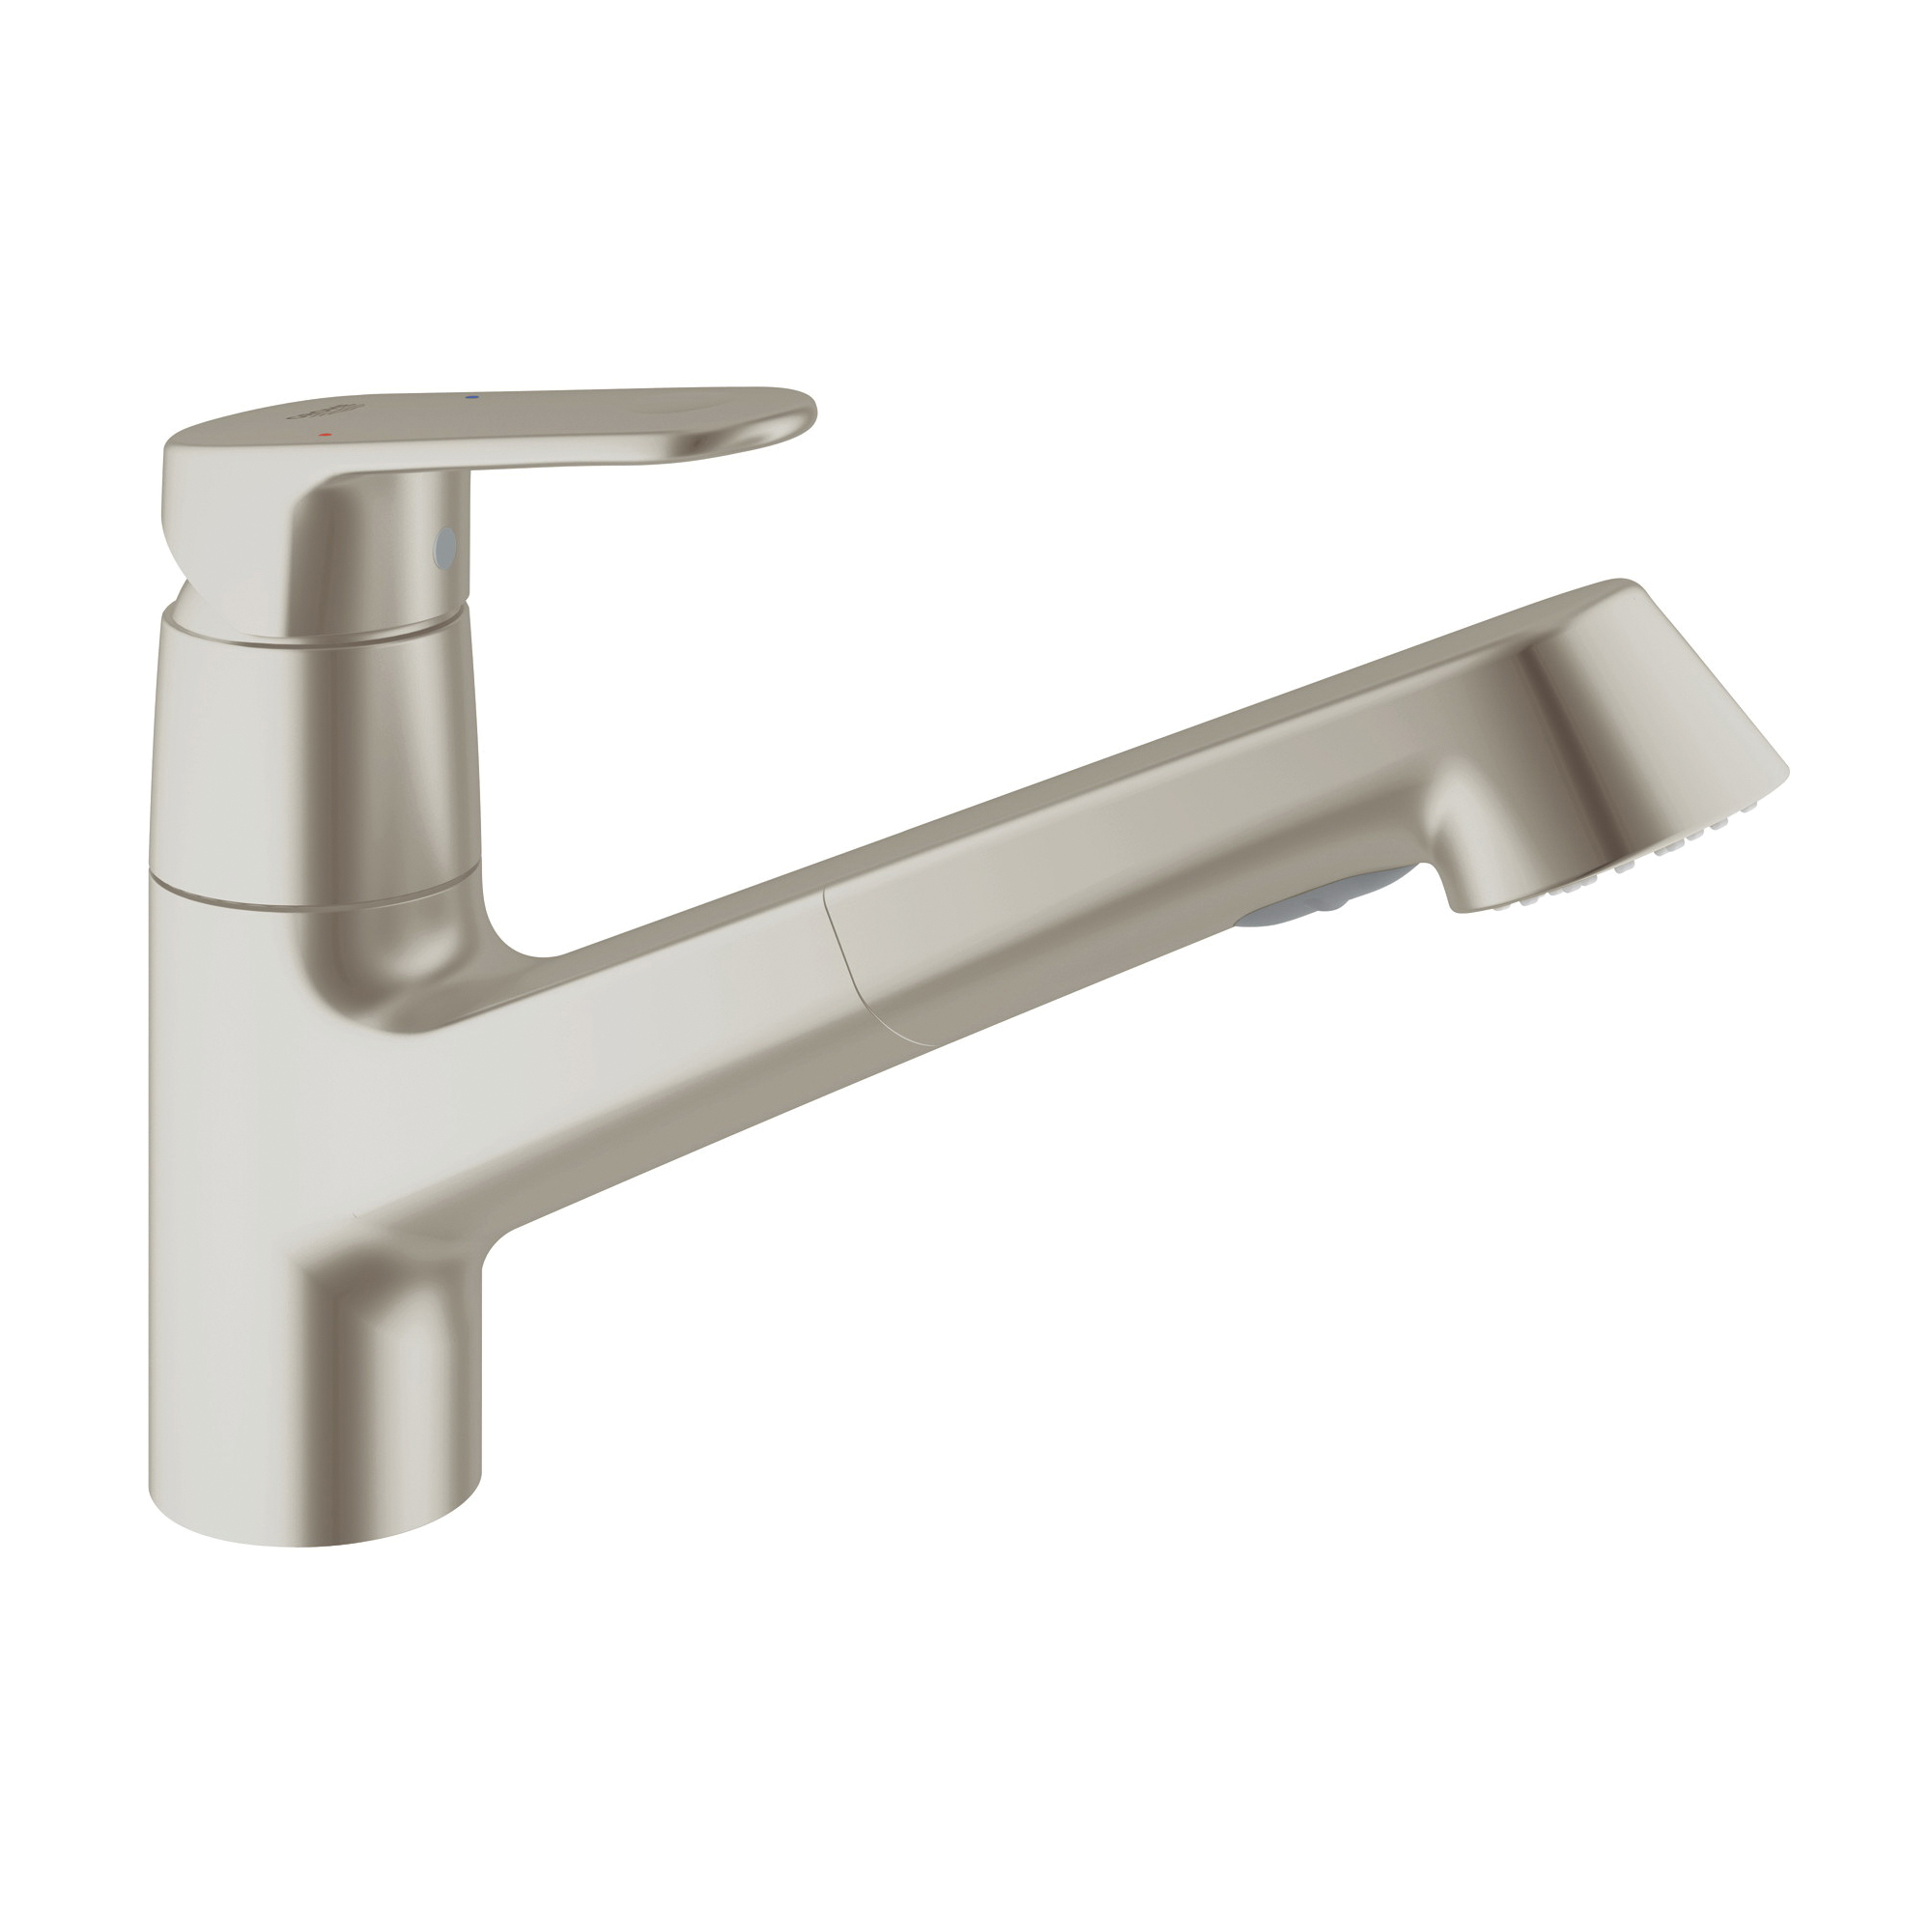 GROHE 32946DC2 Europlus Sink Mixer, 1.75 gpm, 1 Faucet Hole, SuperSteel, 1 Handle, Import